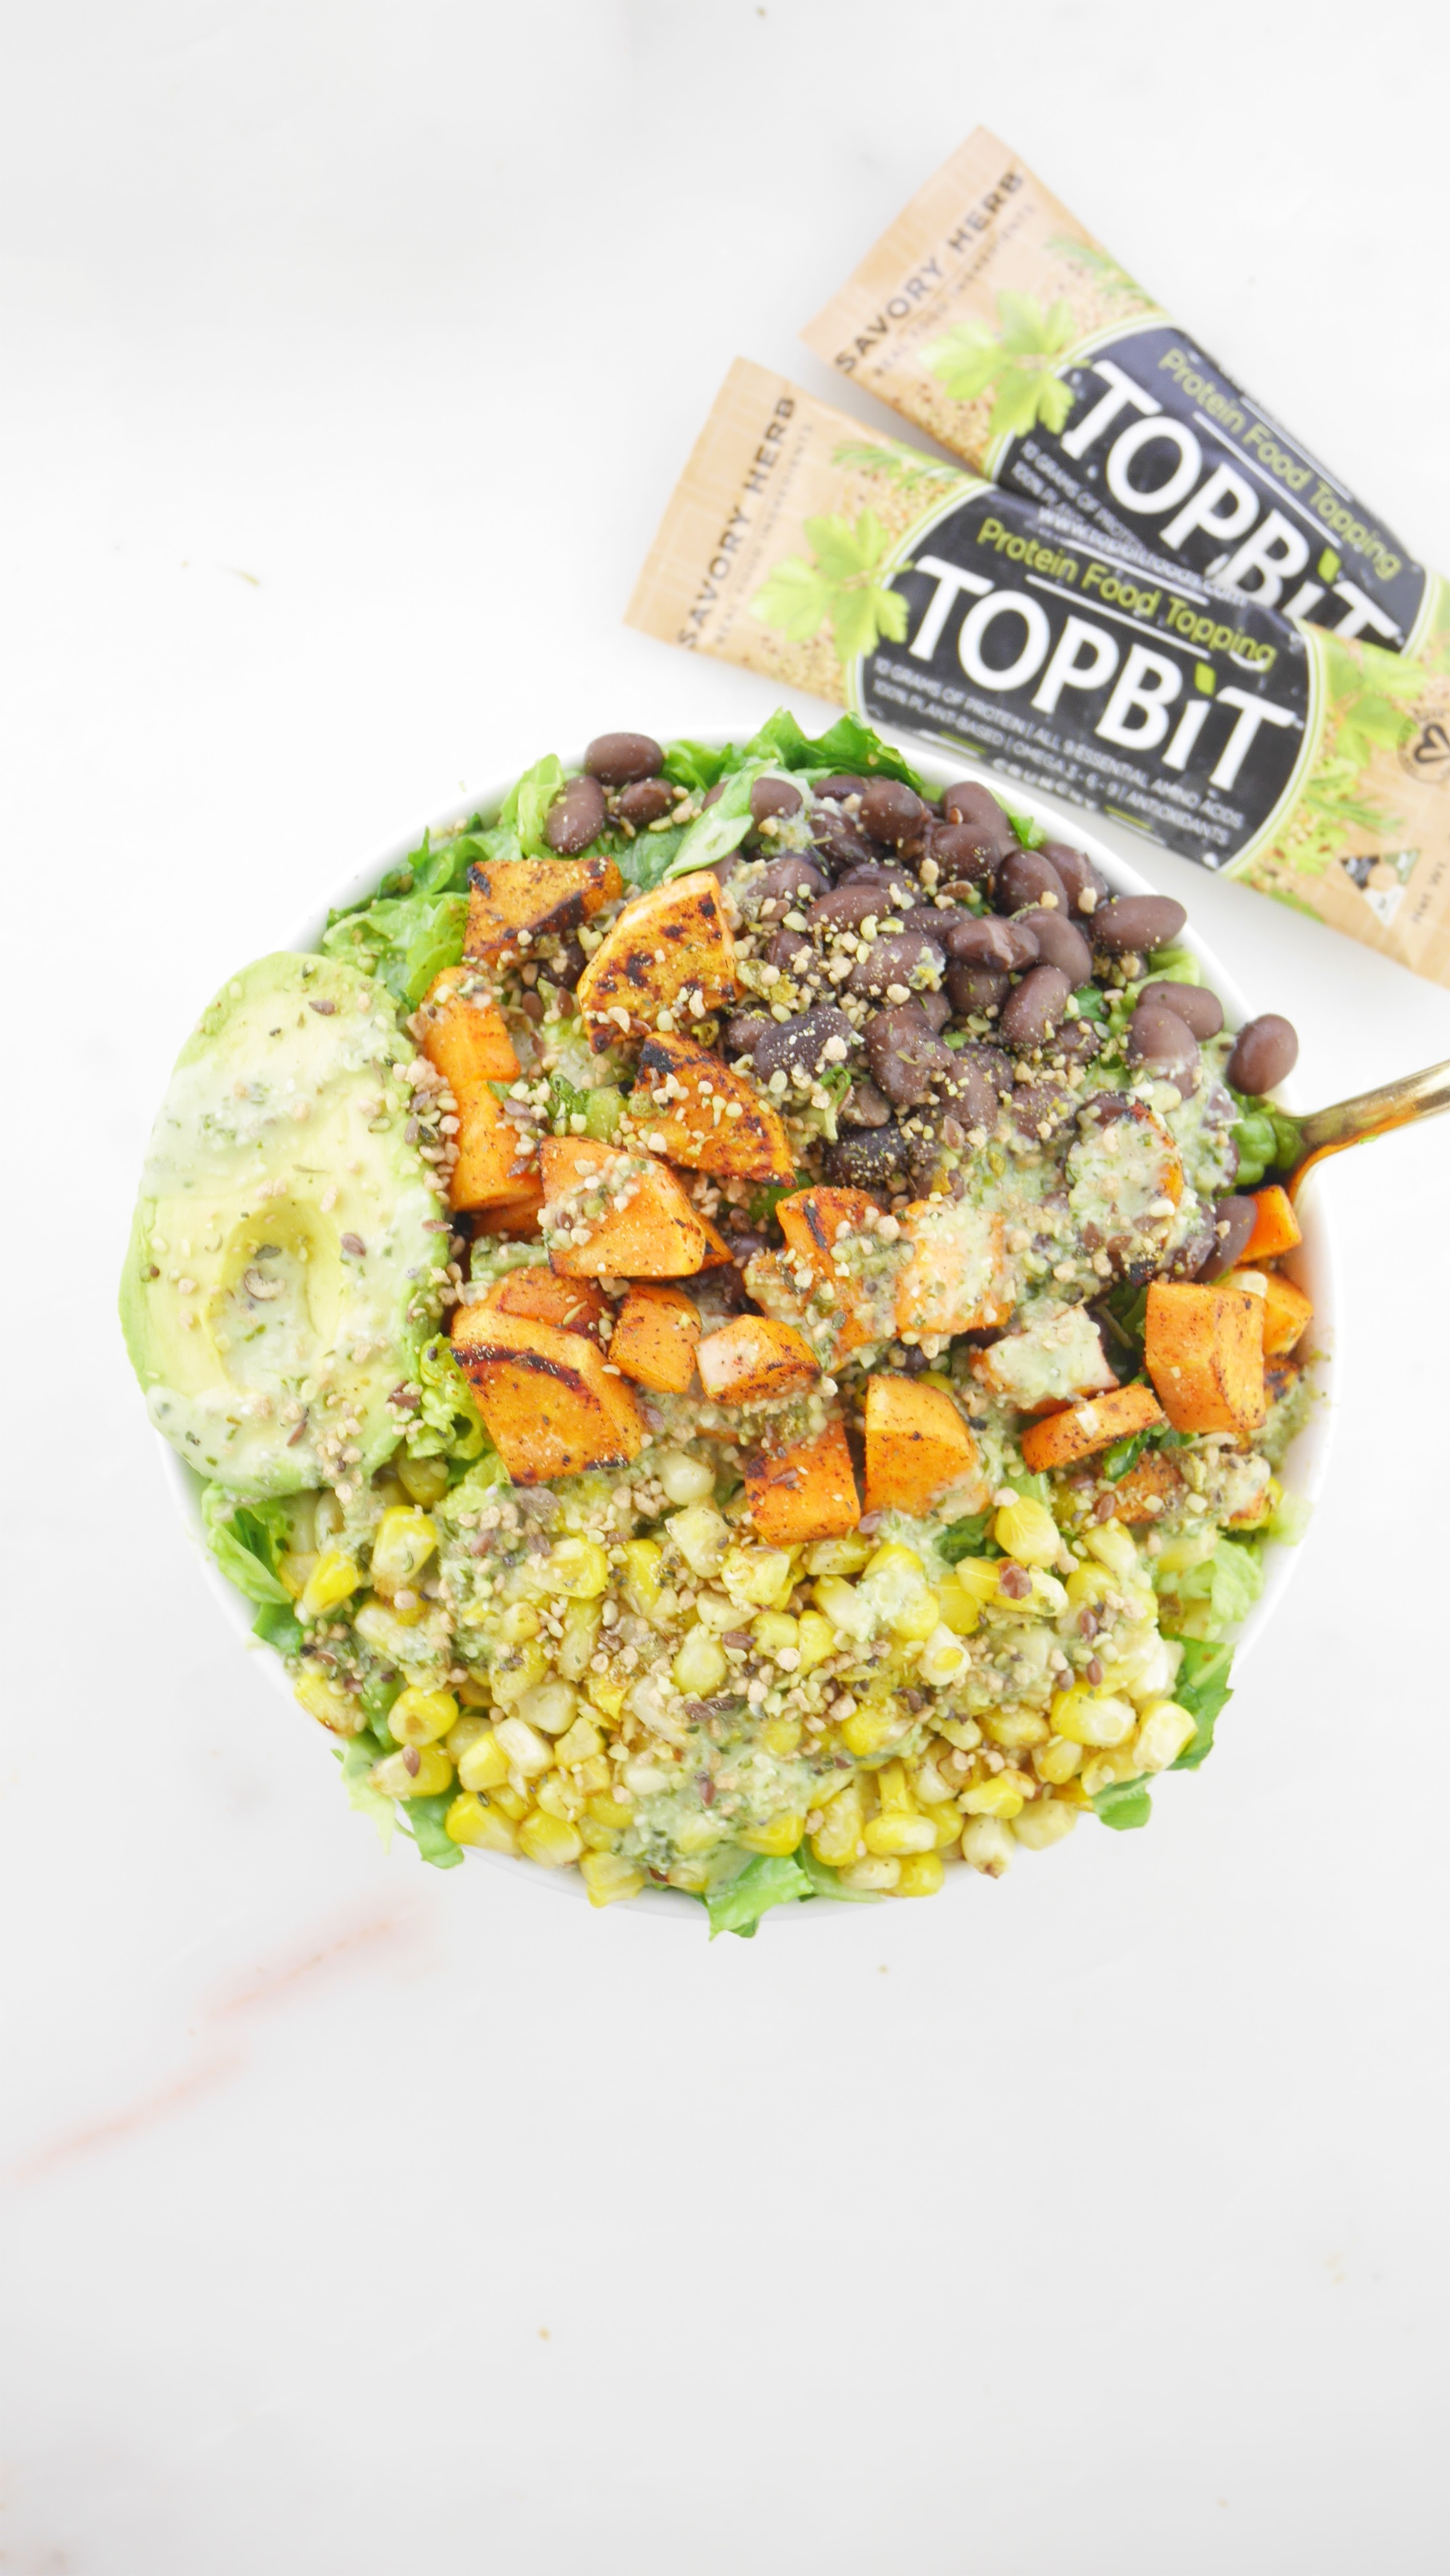 Taco Superfood Salad TopBit Savory